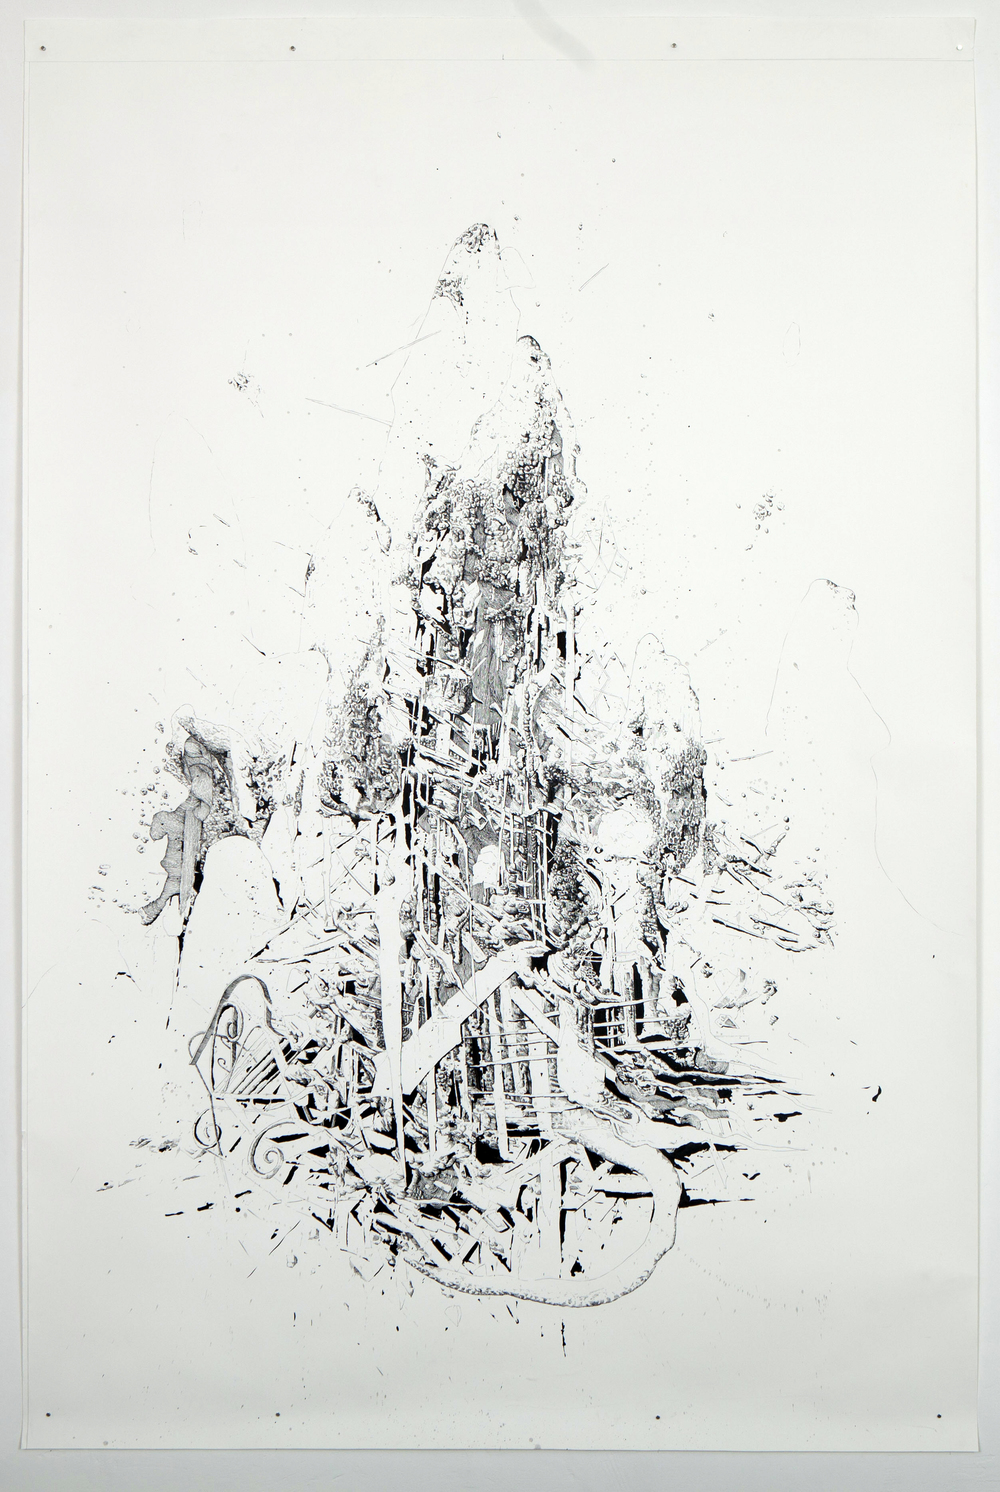 BK_P_00210_untitled_ink_on_paper_Tusche_220x150cm_2012_ privat collection potsdam